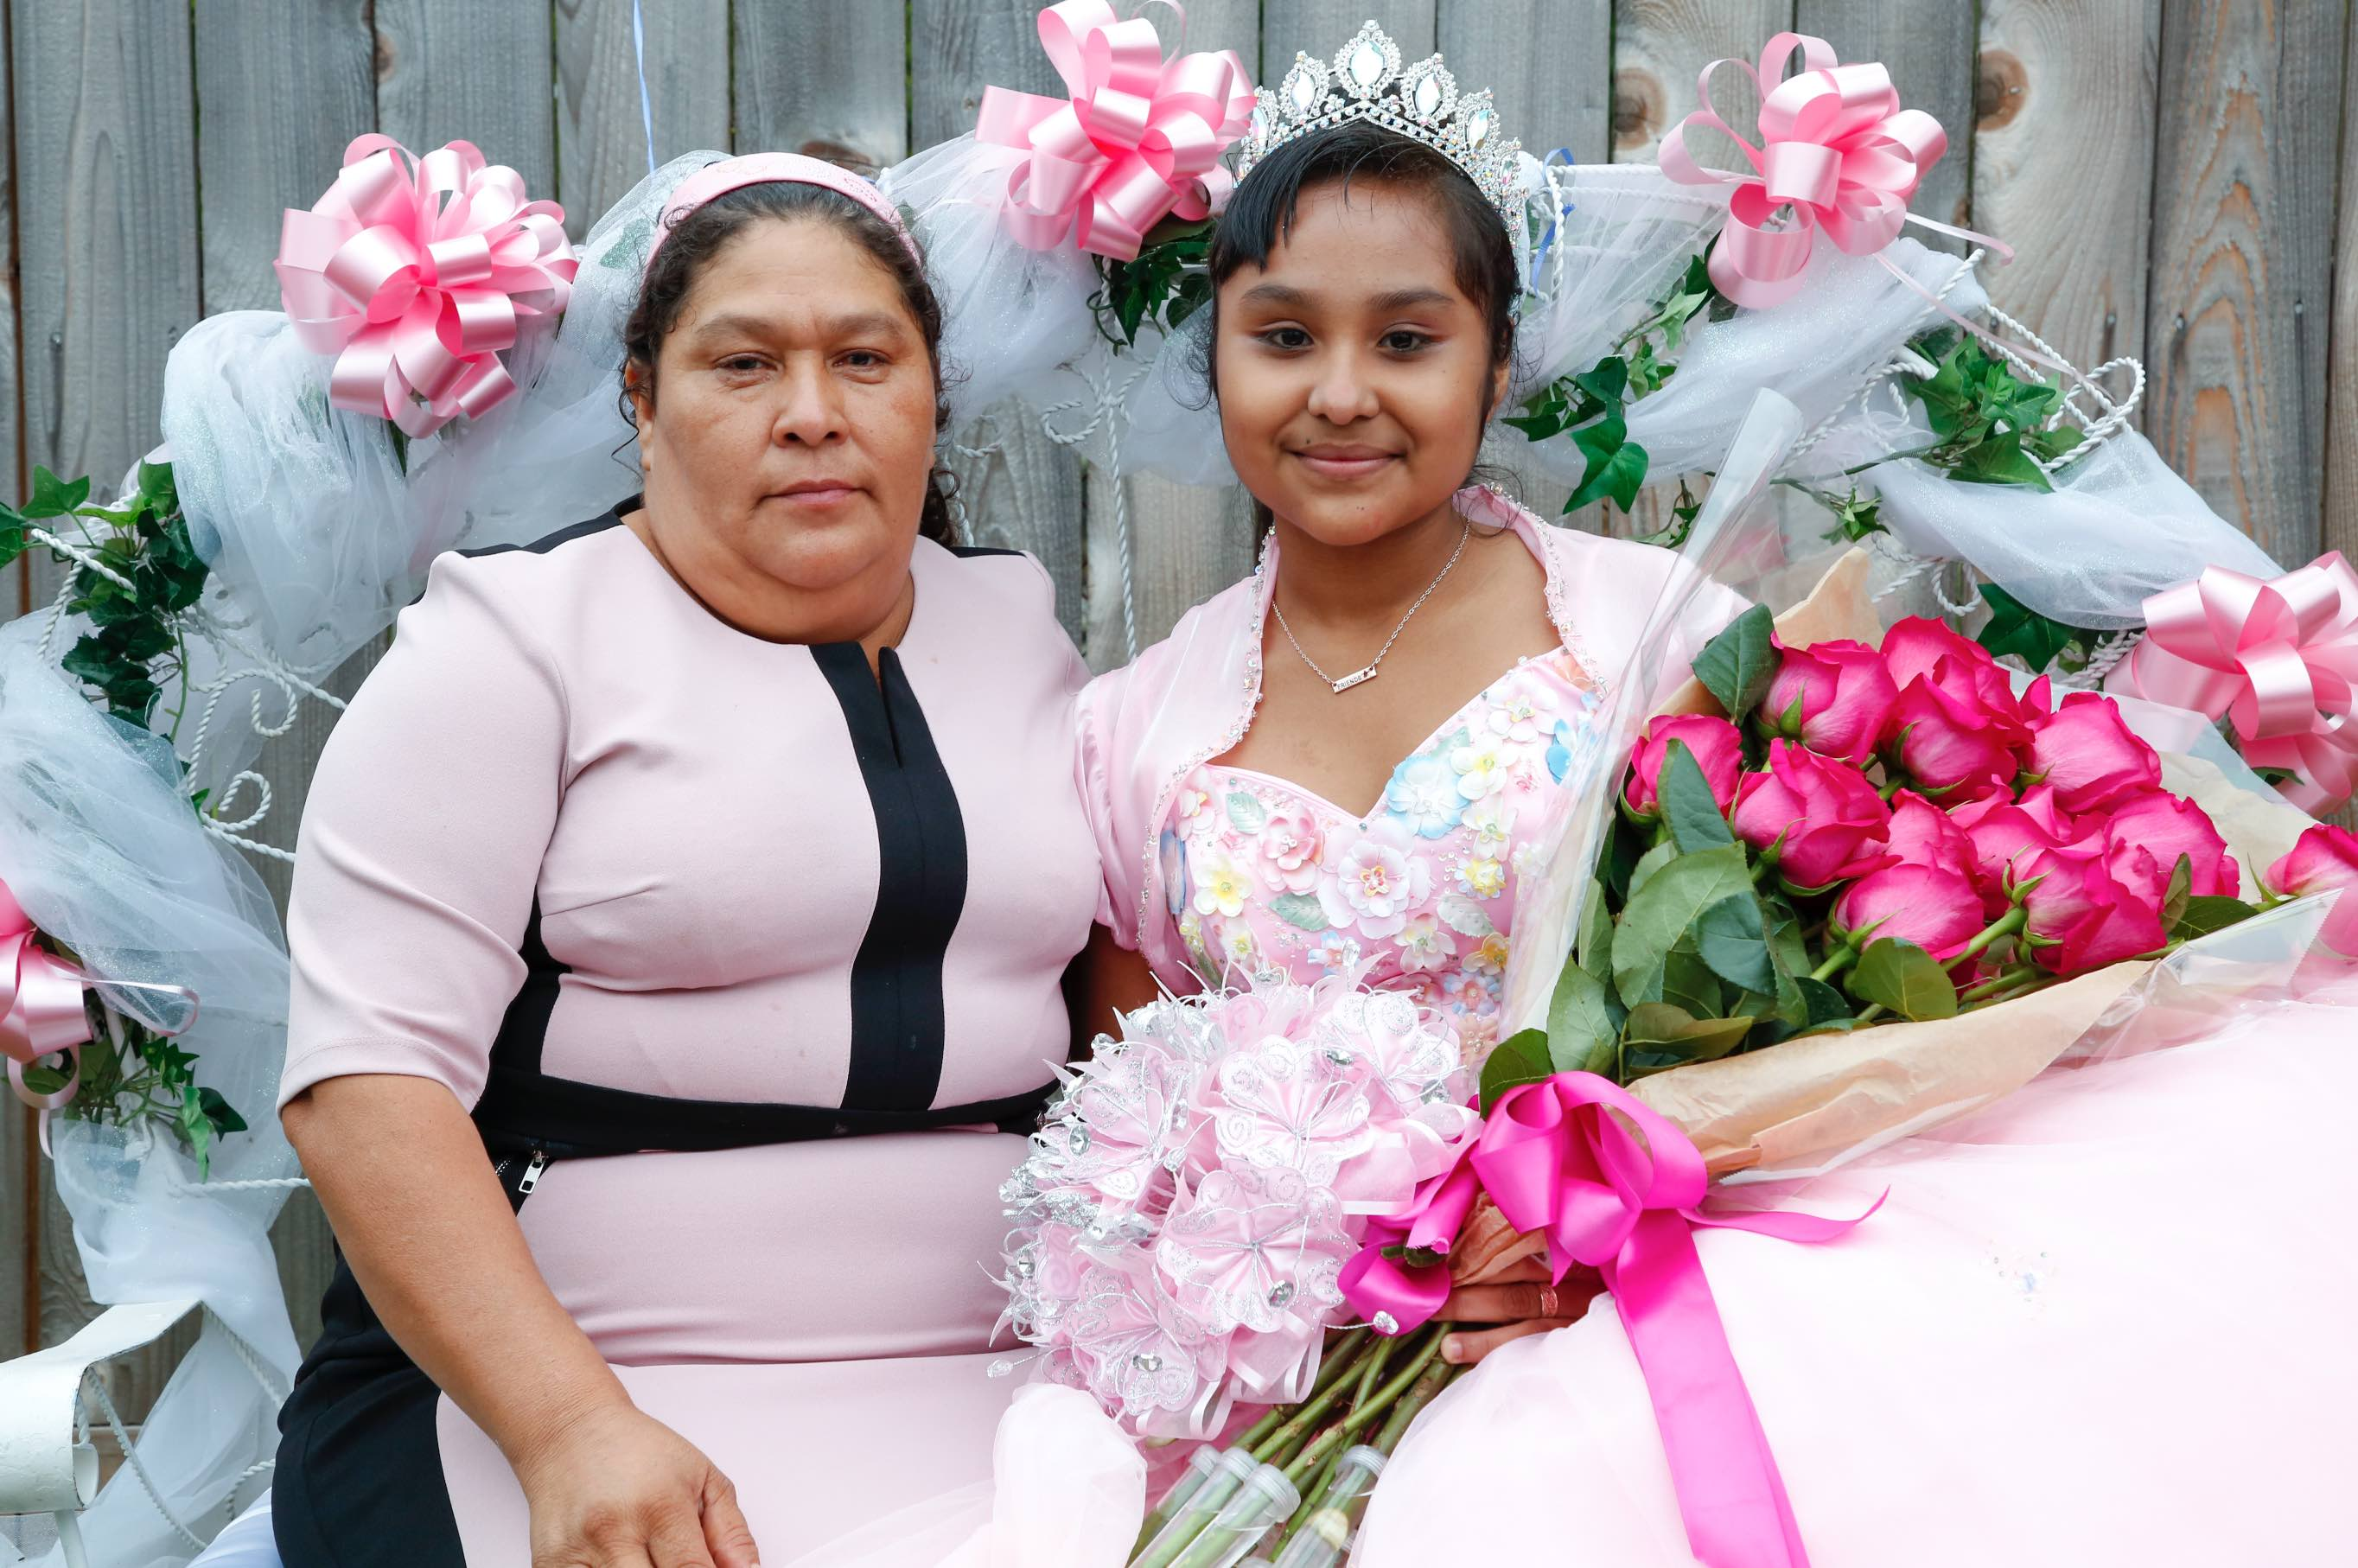 This Photo Series Is a Moving Tribute to Houston's Central American Community